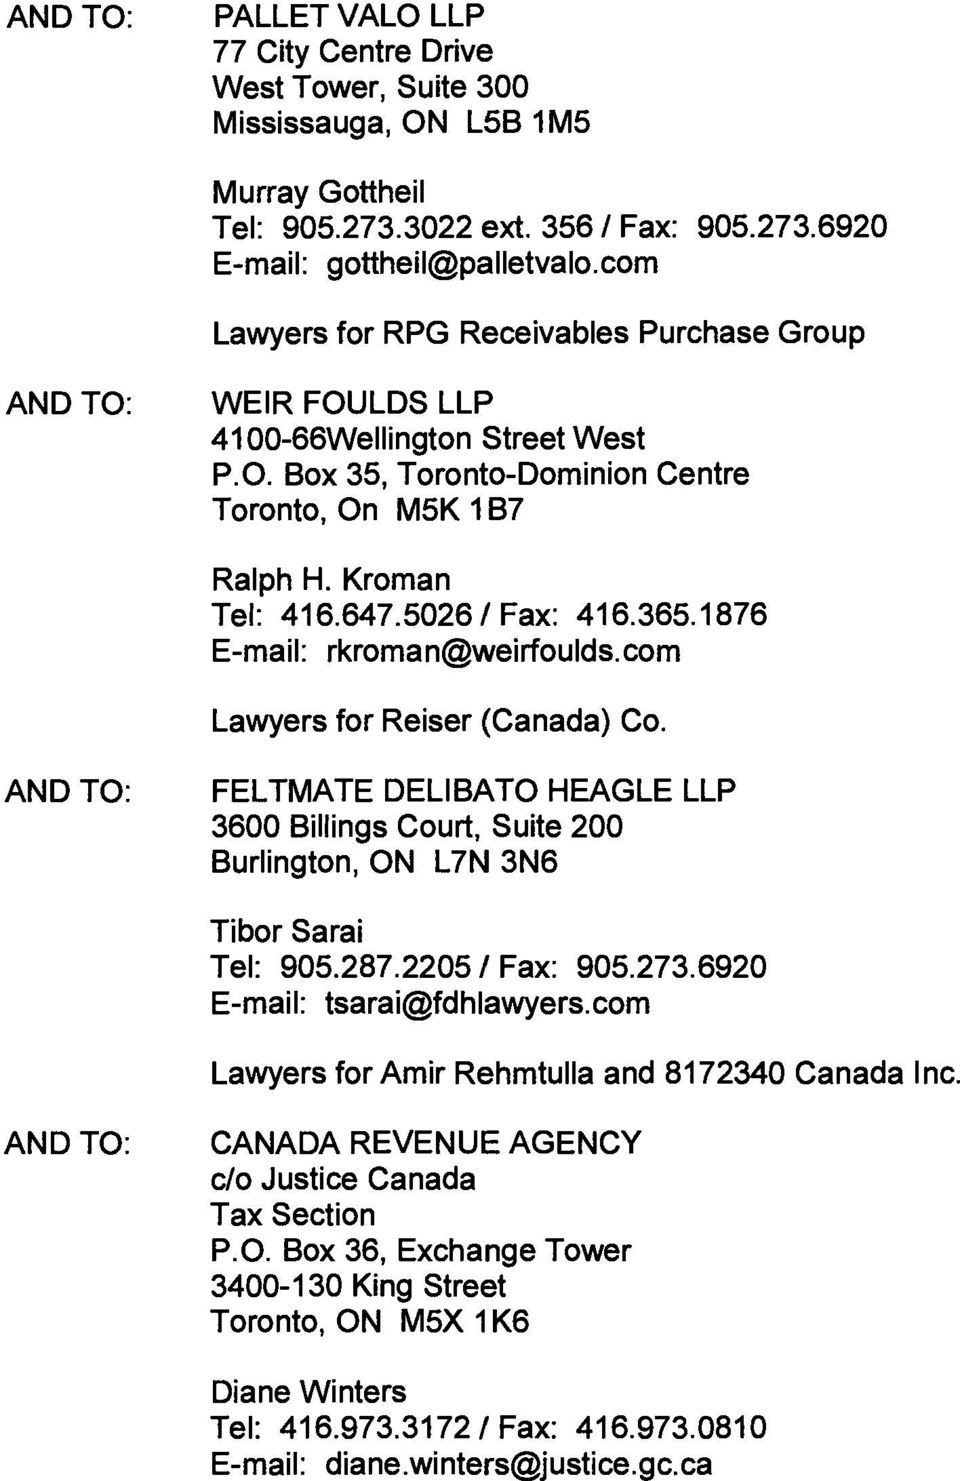 5026 / Fax: 416.365.1876 E-mail: rkroman@weirfoulds.com Lawyers for Reiser (Canada) Co. AND TO: FELTMATE DELIBATO HEAGLE LLP 3600 Billings Court, Suite 200 Burlington, ON L7N 3N6 Tibor Sarai Tel: 905.